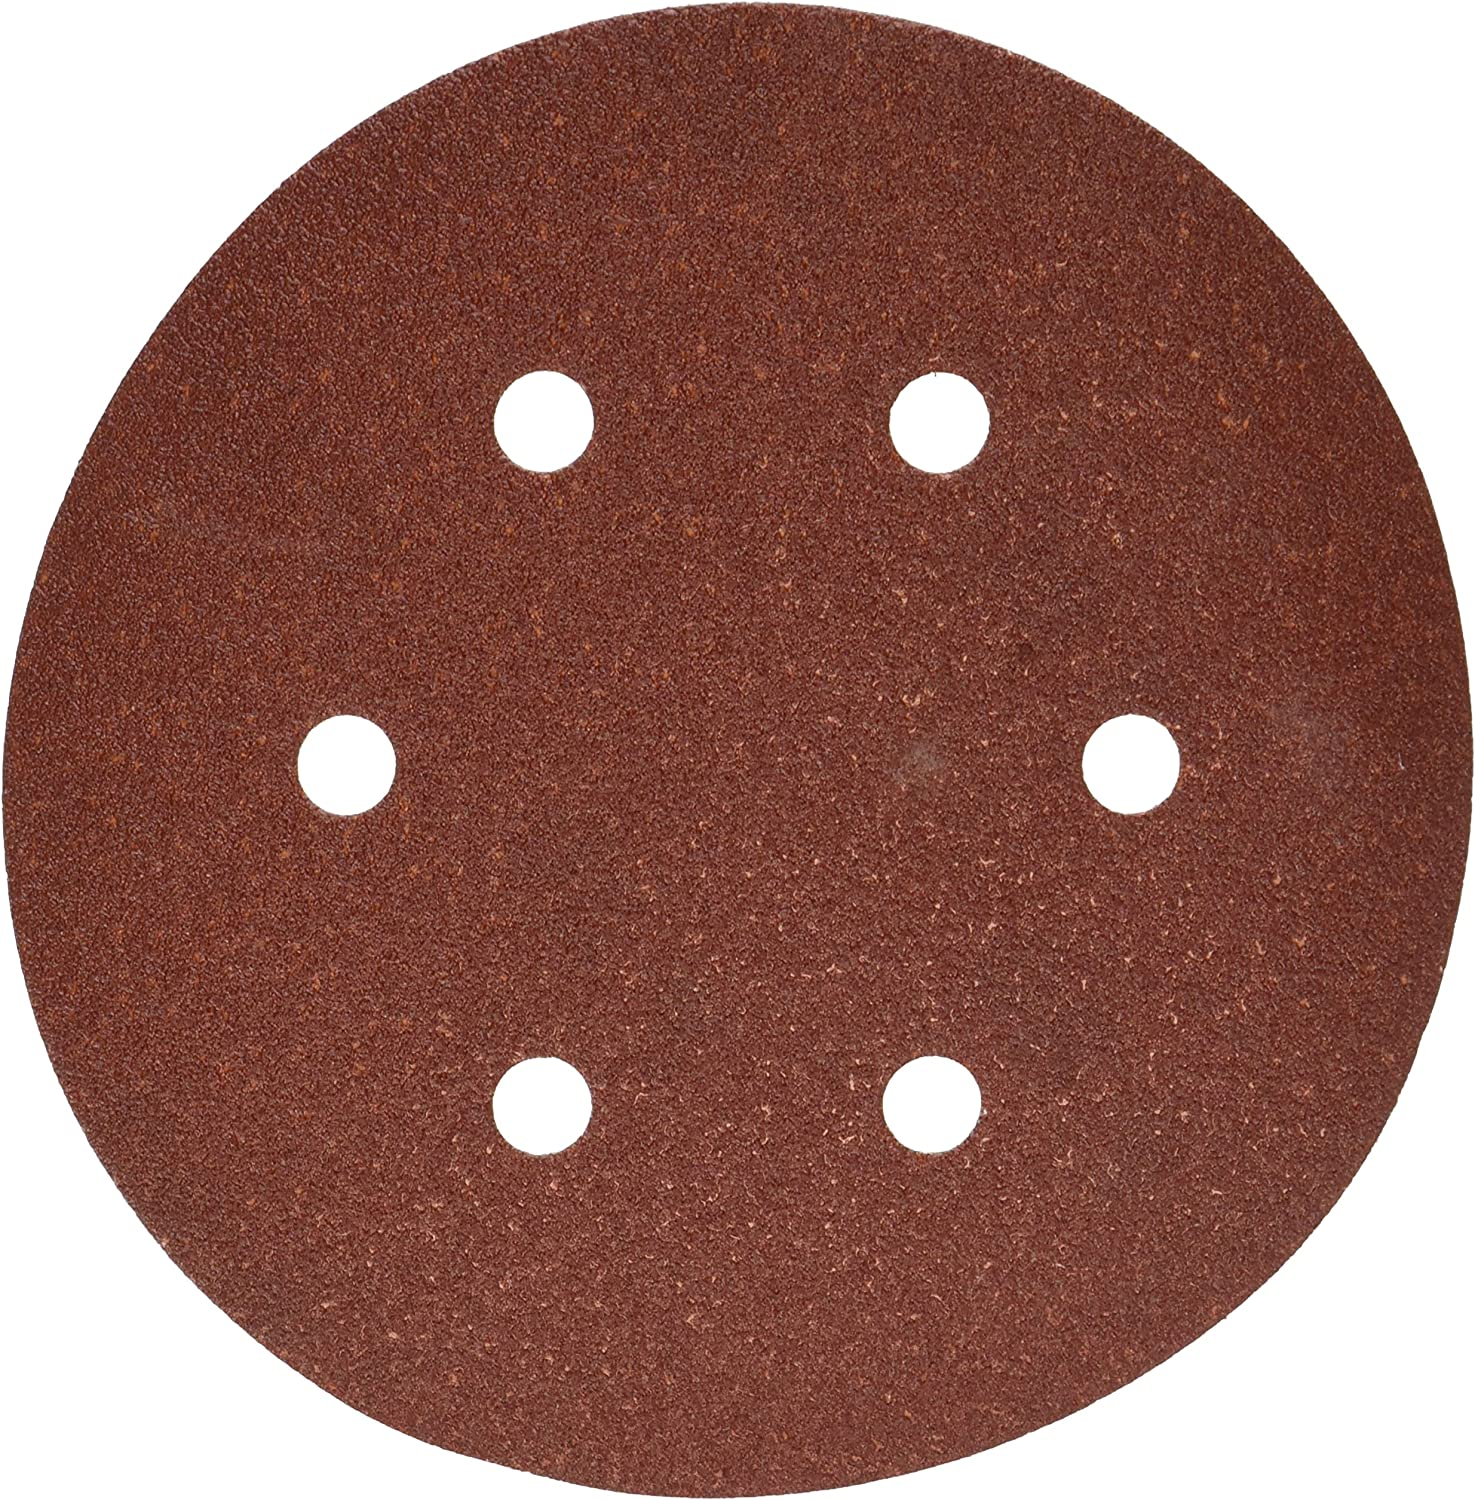 PORTER-CABLE 736600825 6-Inch 6-Hole Hook and Loop 80 Grit Sanding Discs 25-Pack